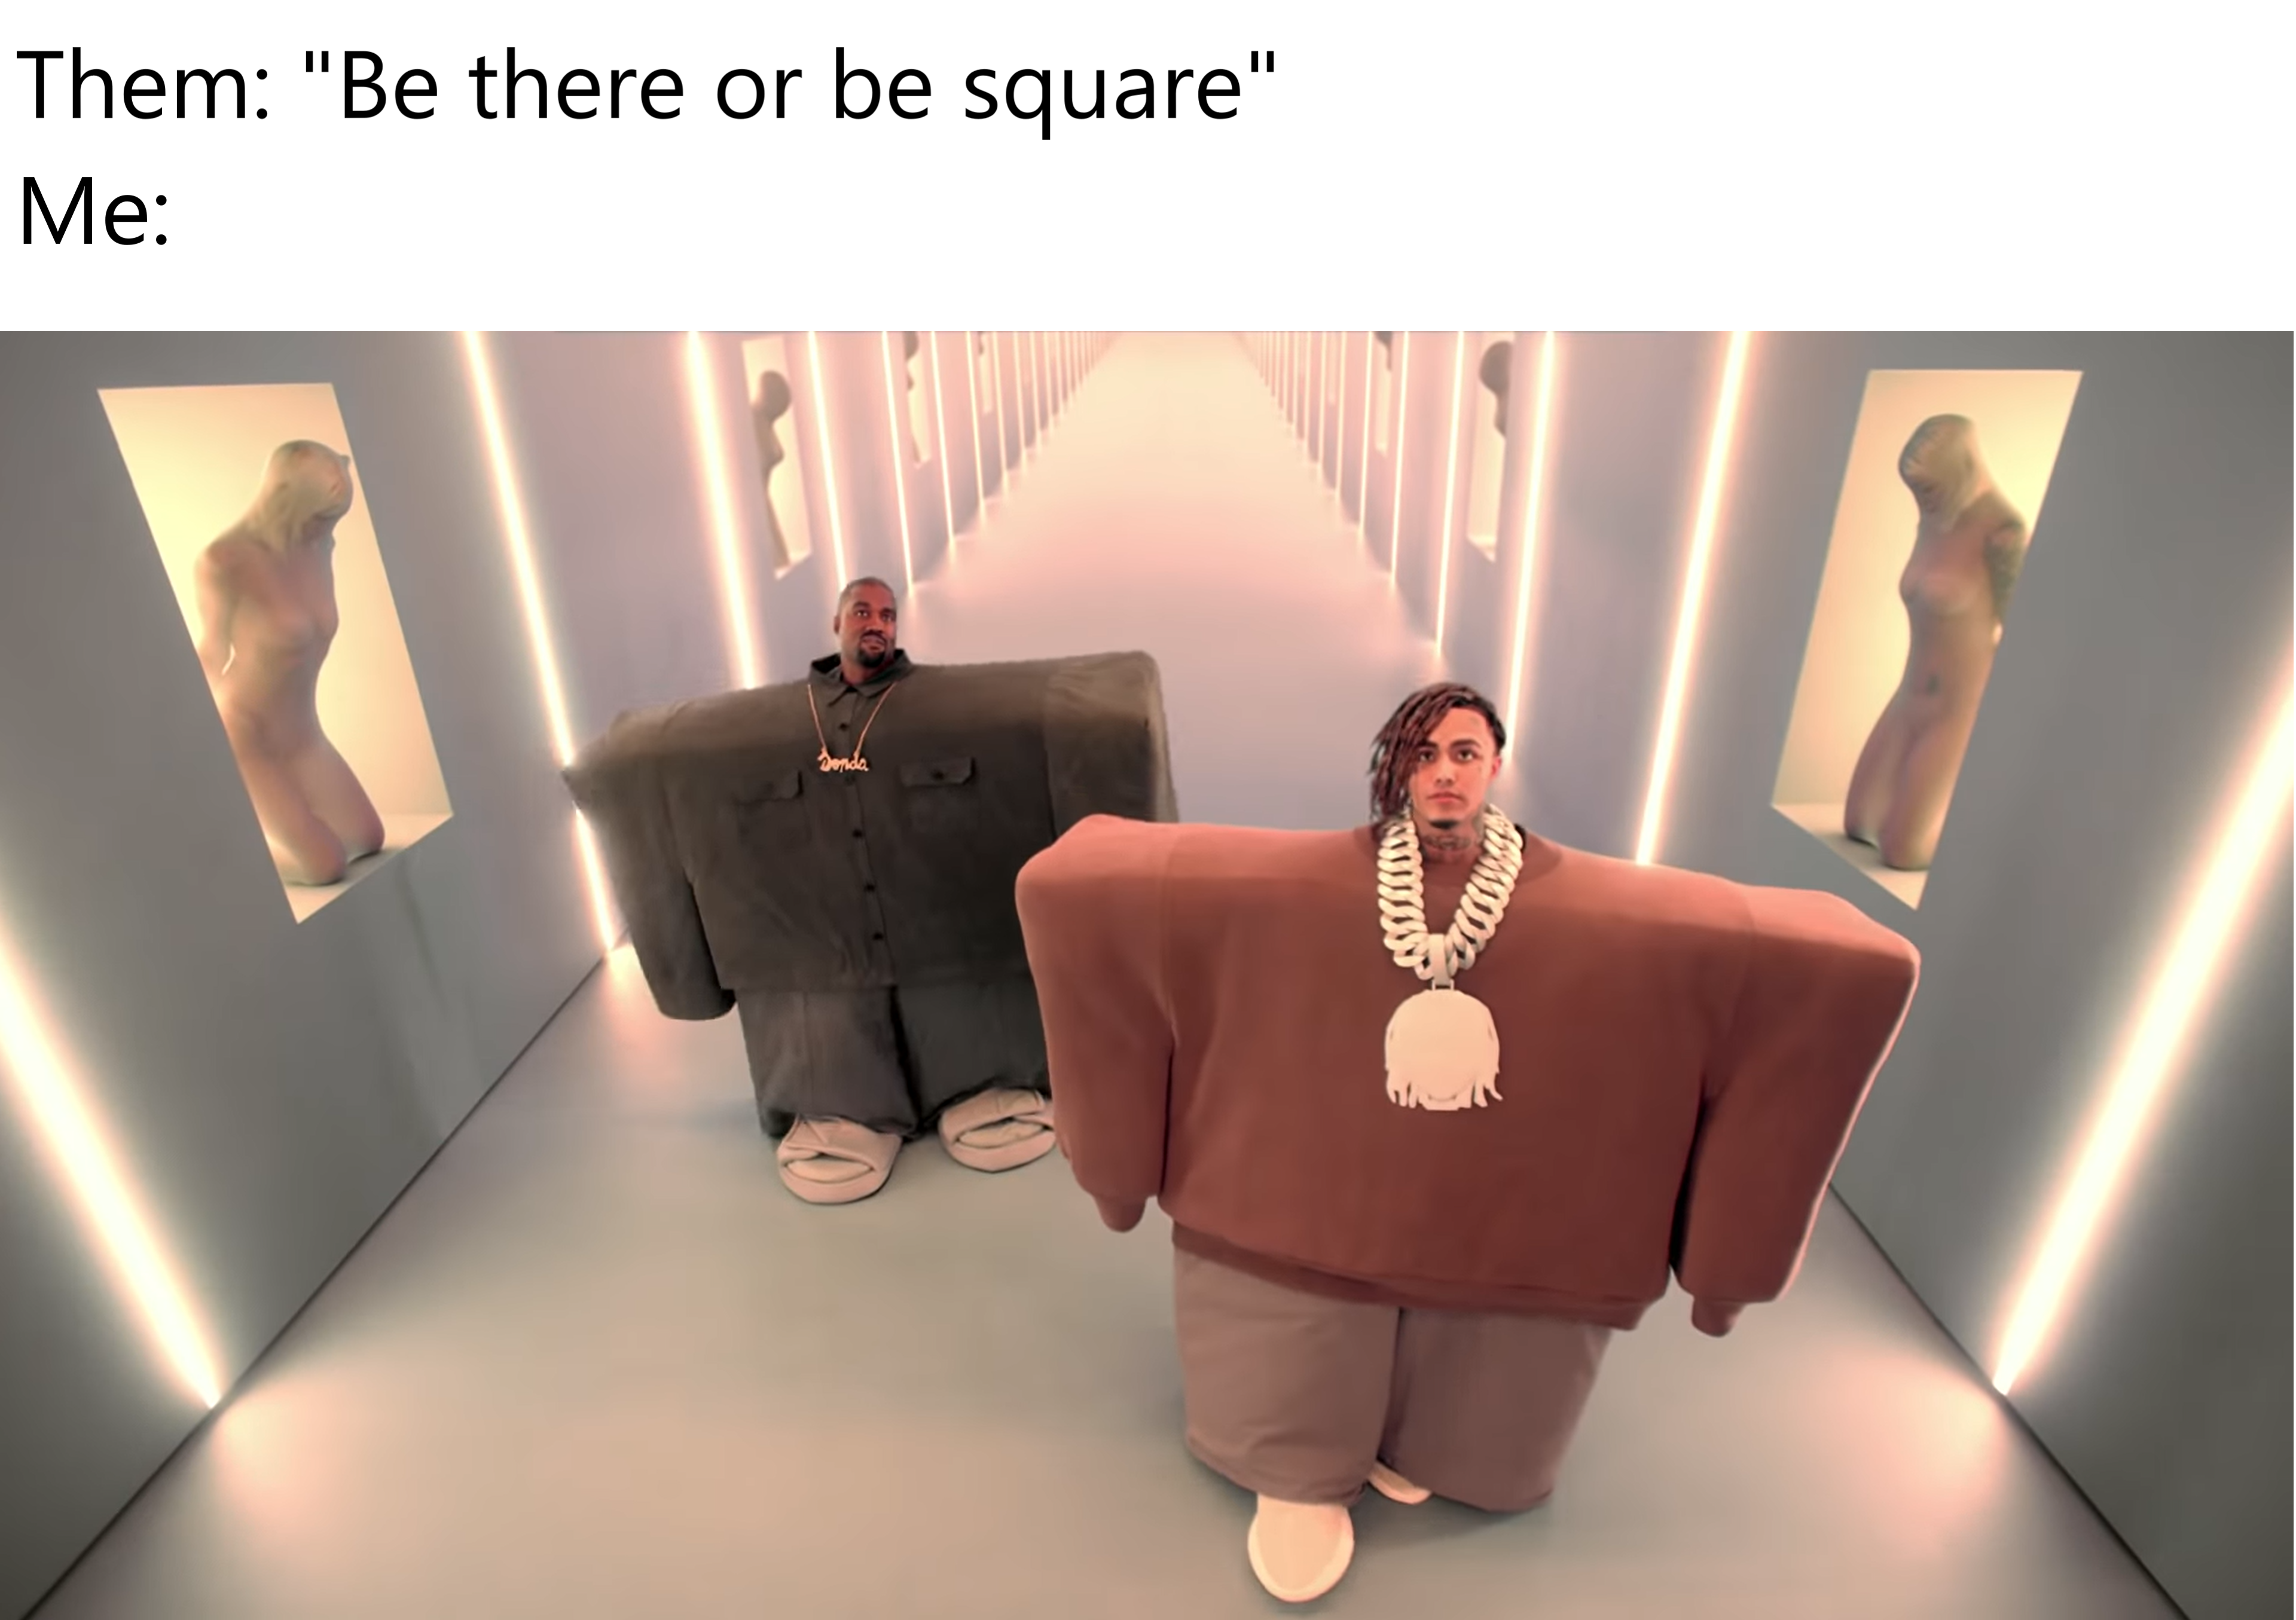 Join my roblox server